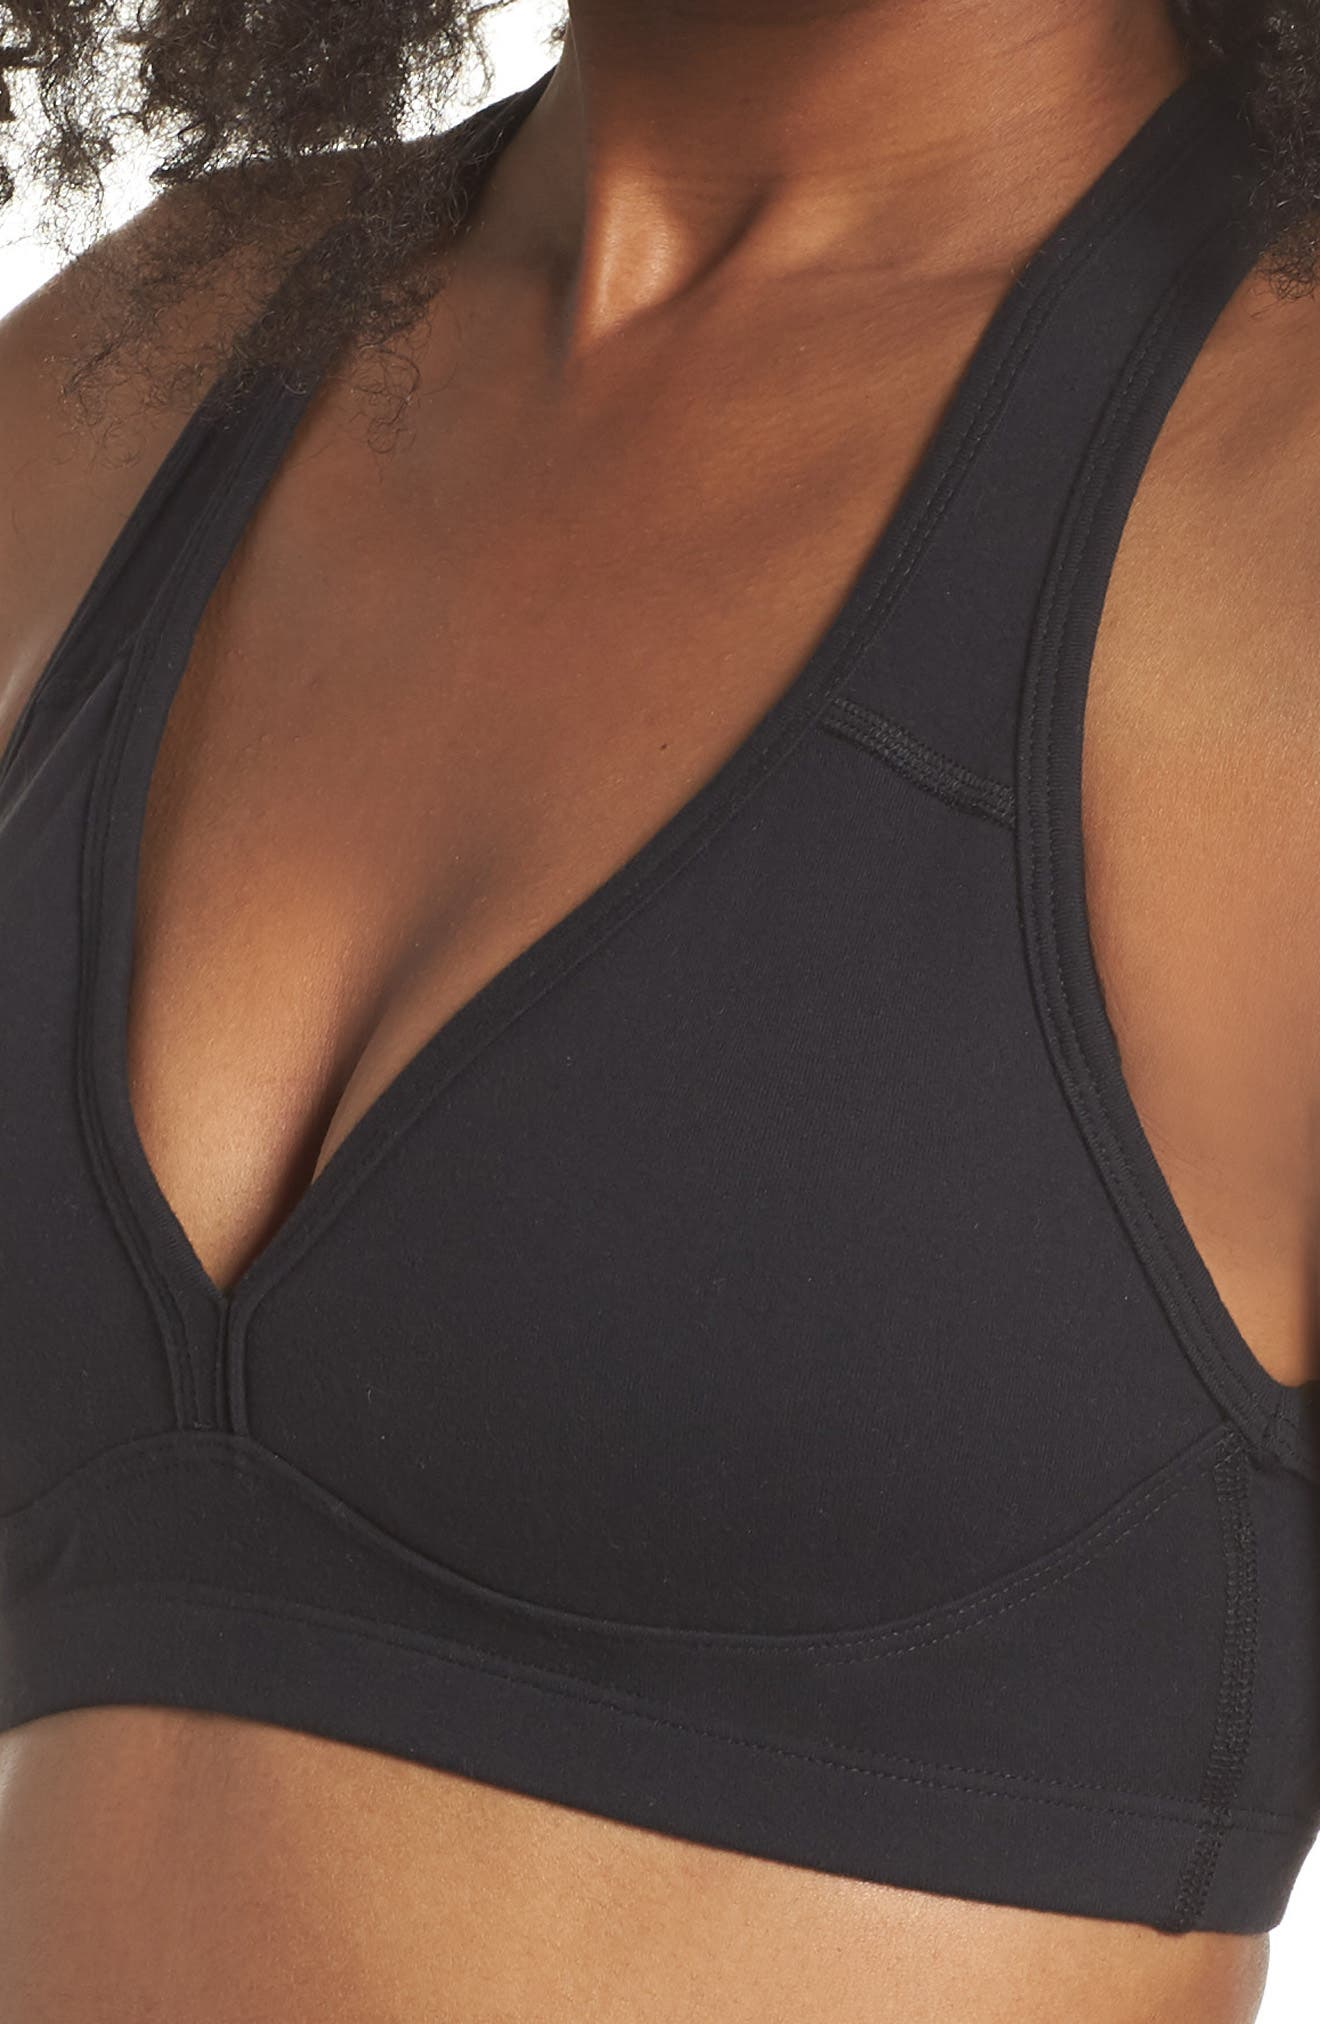 Lift Your Spirits Sports Bra,                             Alternate thumbnail 4, color,                             JET BLACK